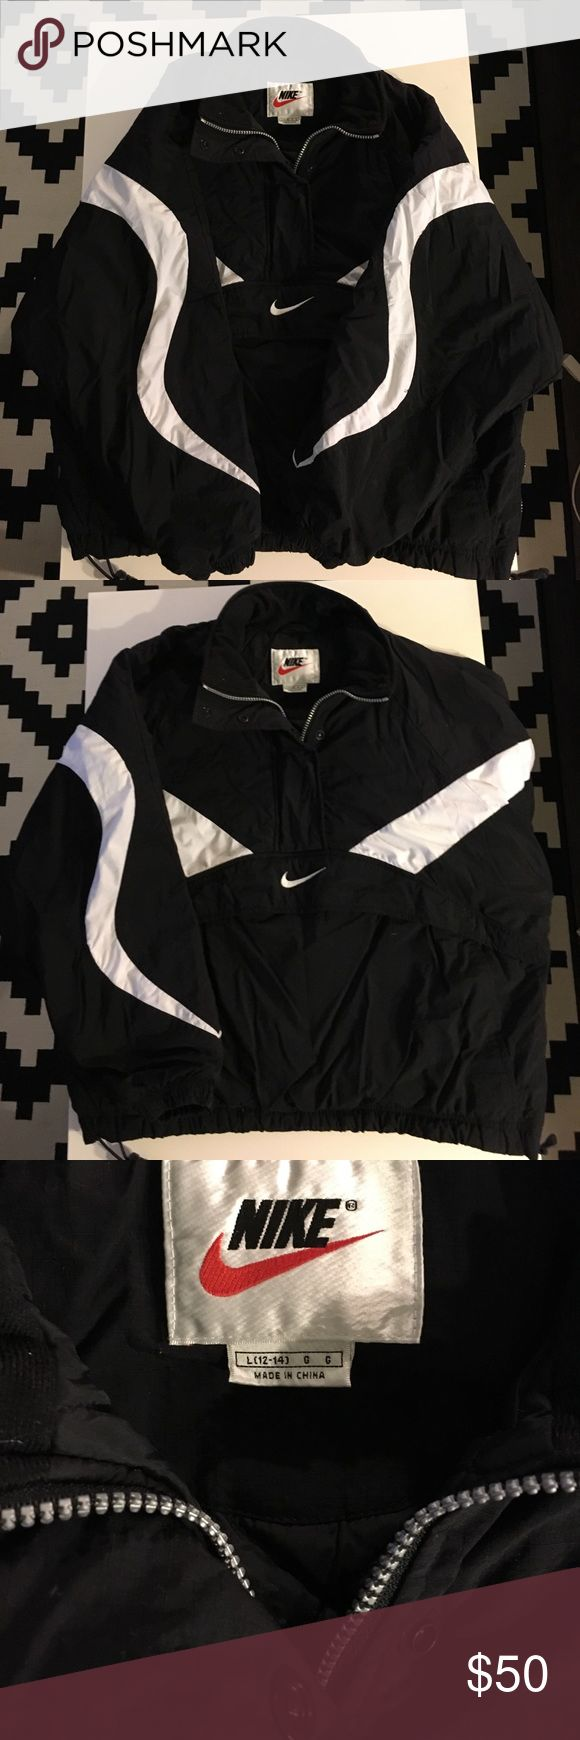 Retro Nike coat This is a decent condition retro Nike coat. Minimal defects. This will bring your retro game to the next level. Nike Jackets & Coats Ski & Snowboard